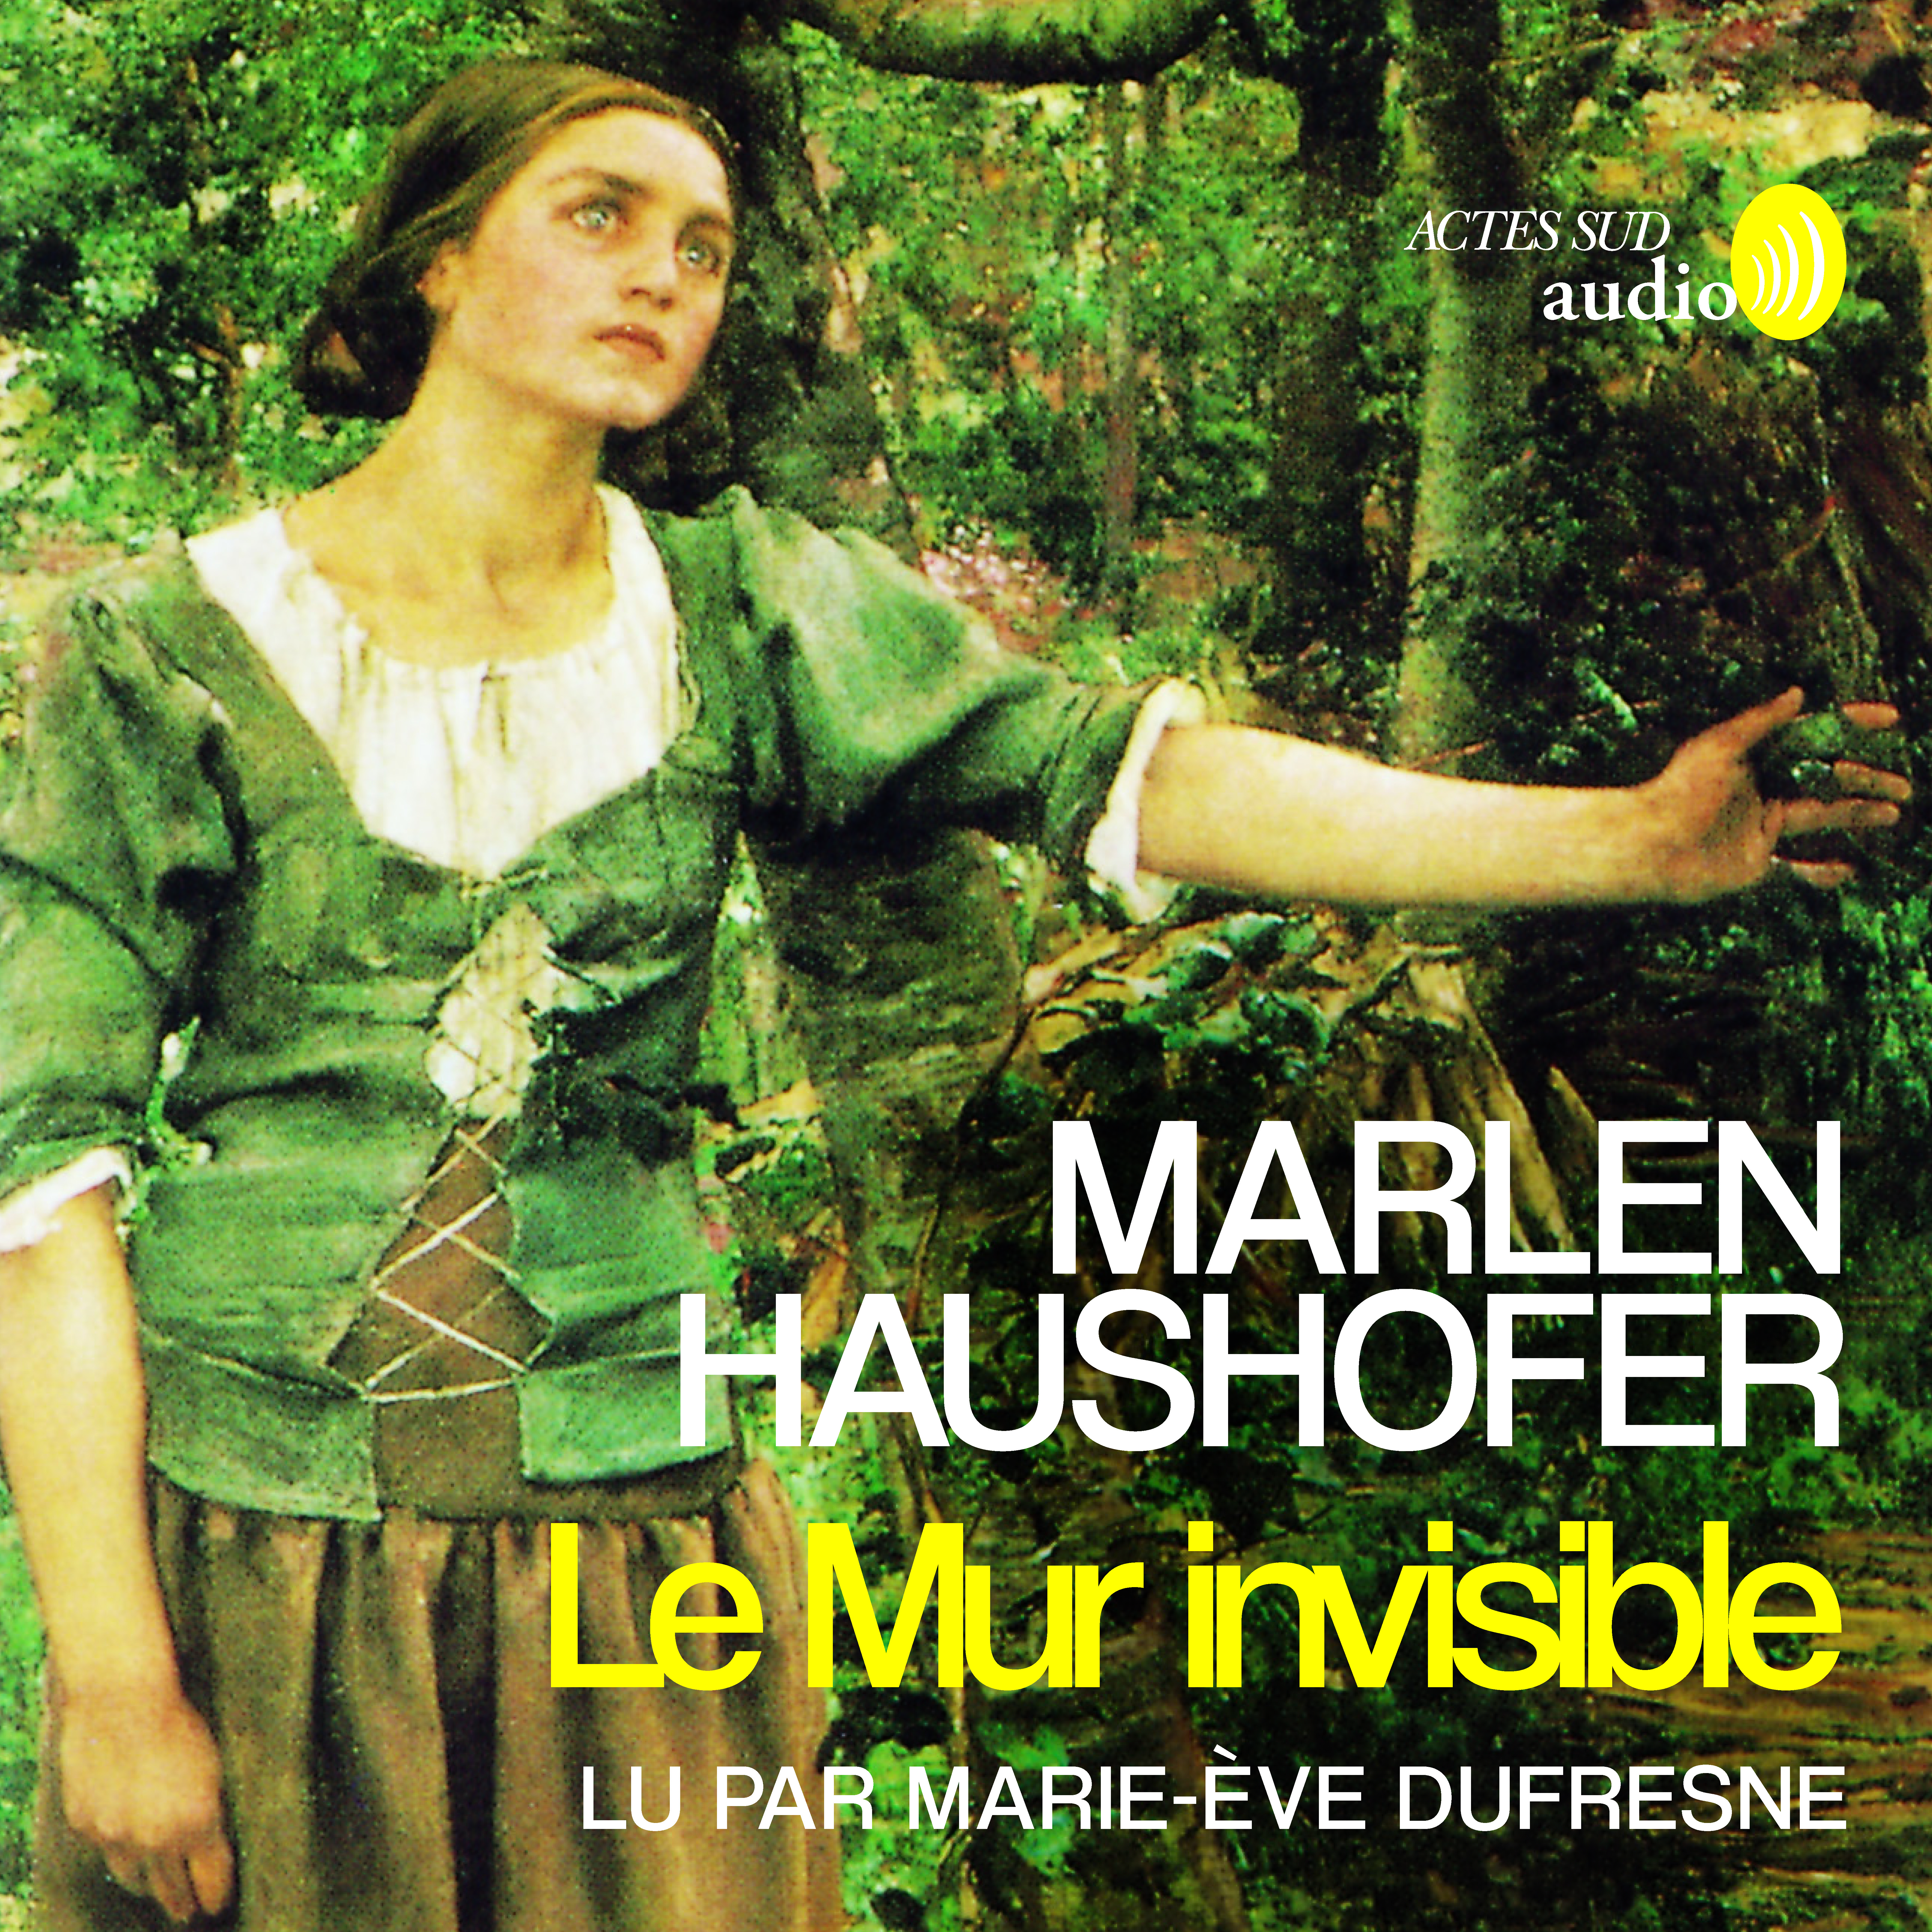 Vignette du livre Le mur invisible  CD mp3  (6h30) - Marlen Haushofer